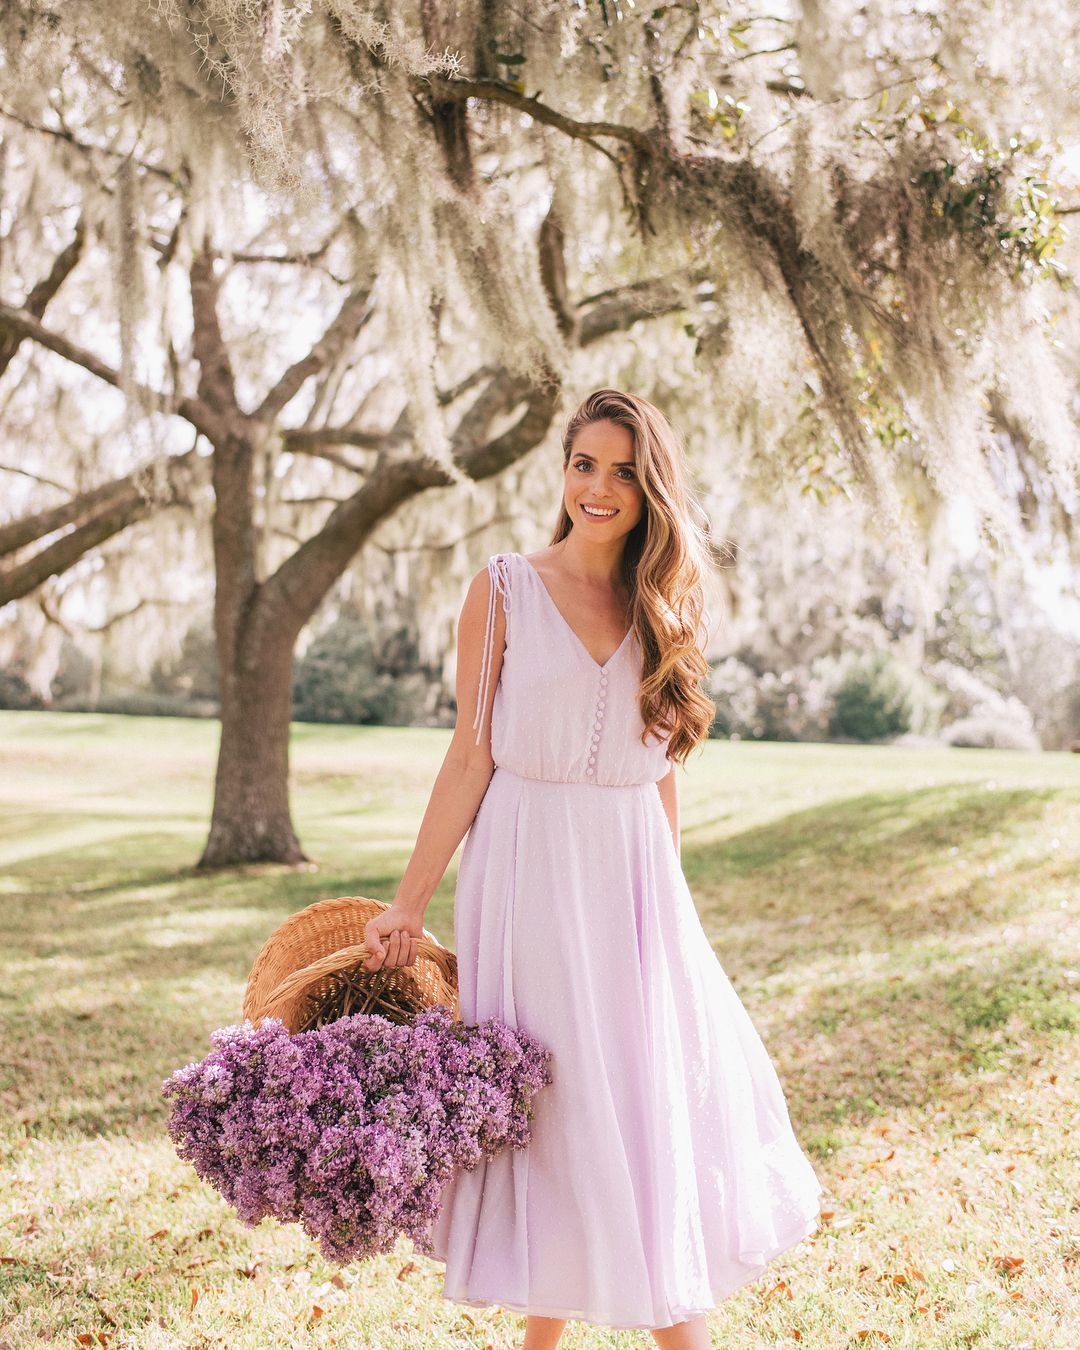 My Favorite Lilac Dress - Simply Sutter